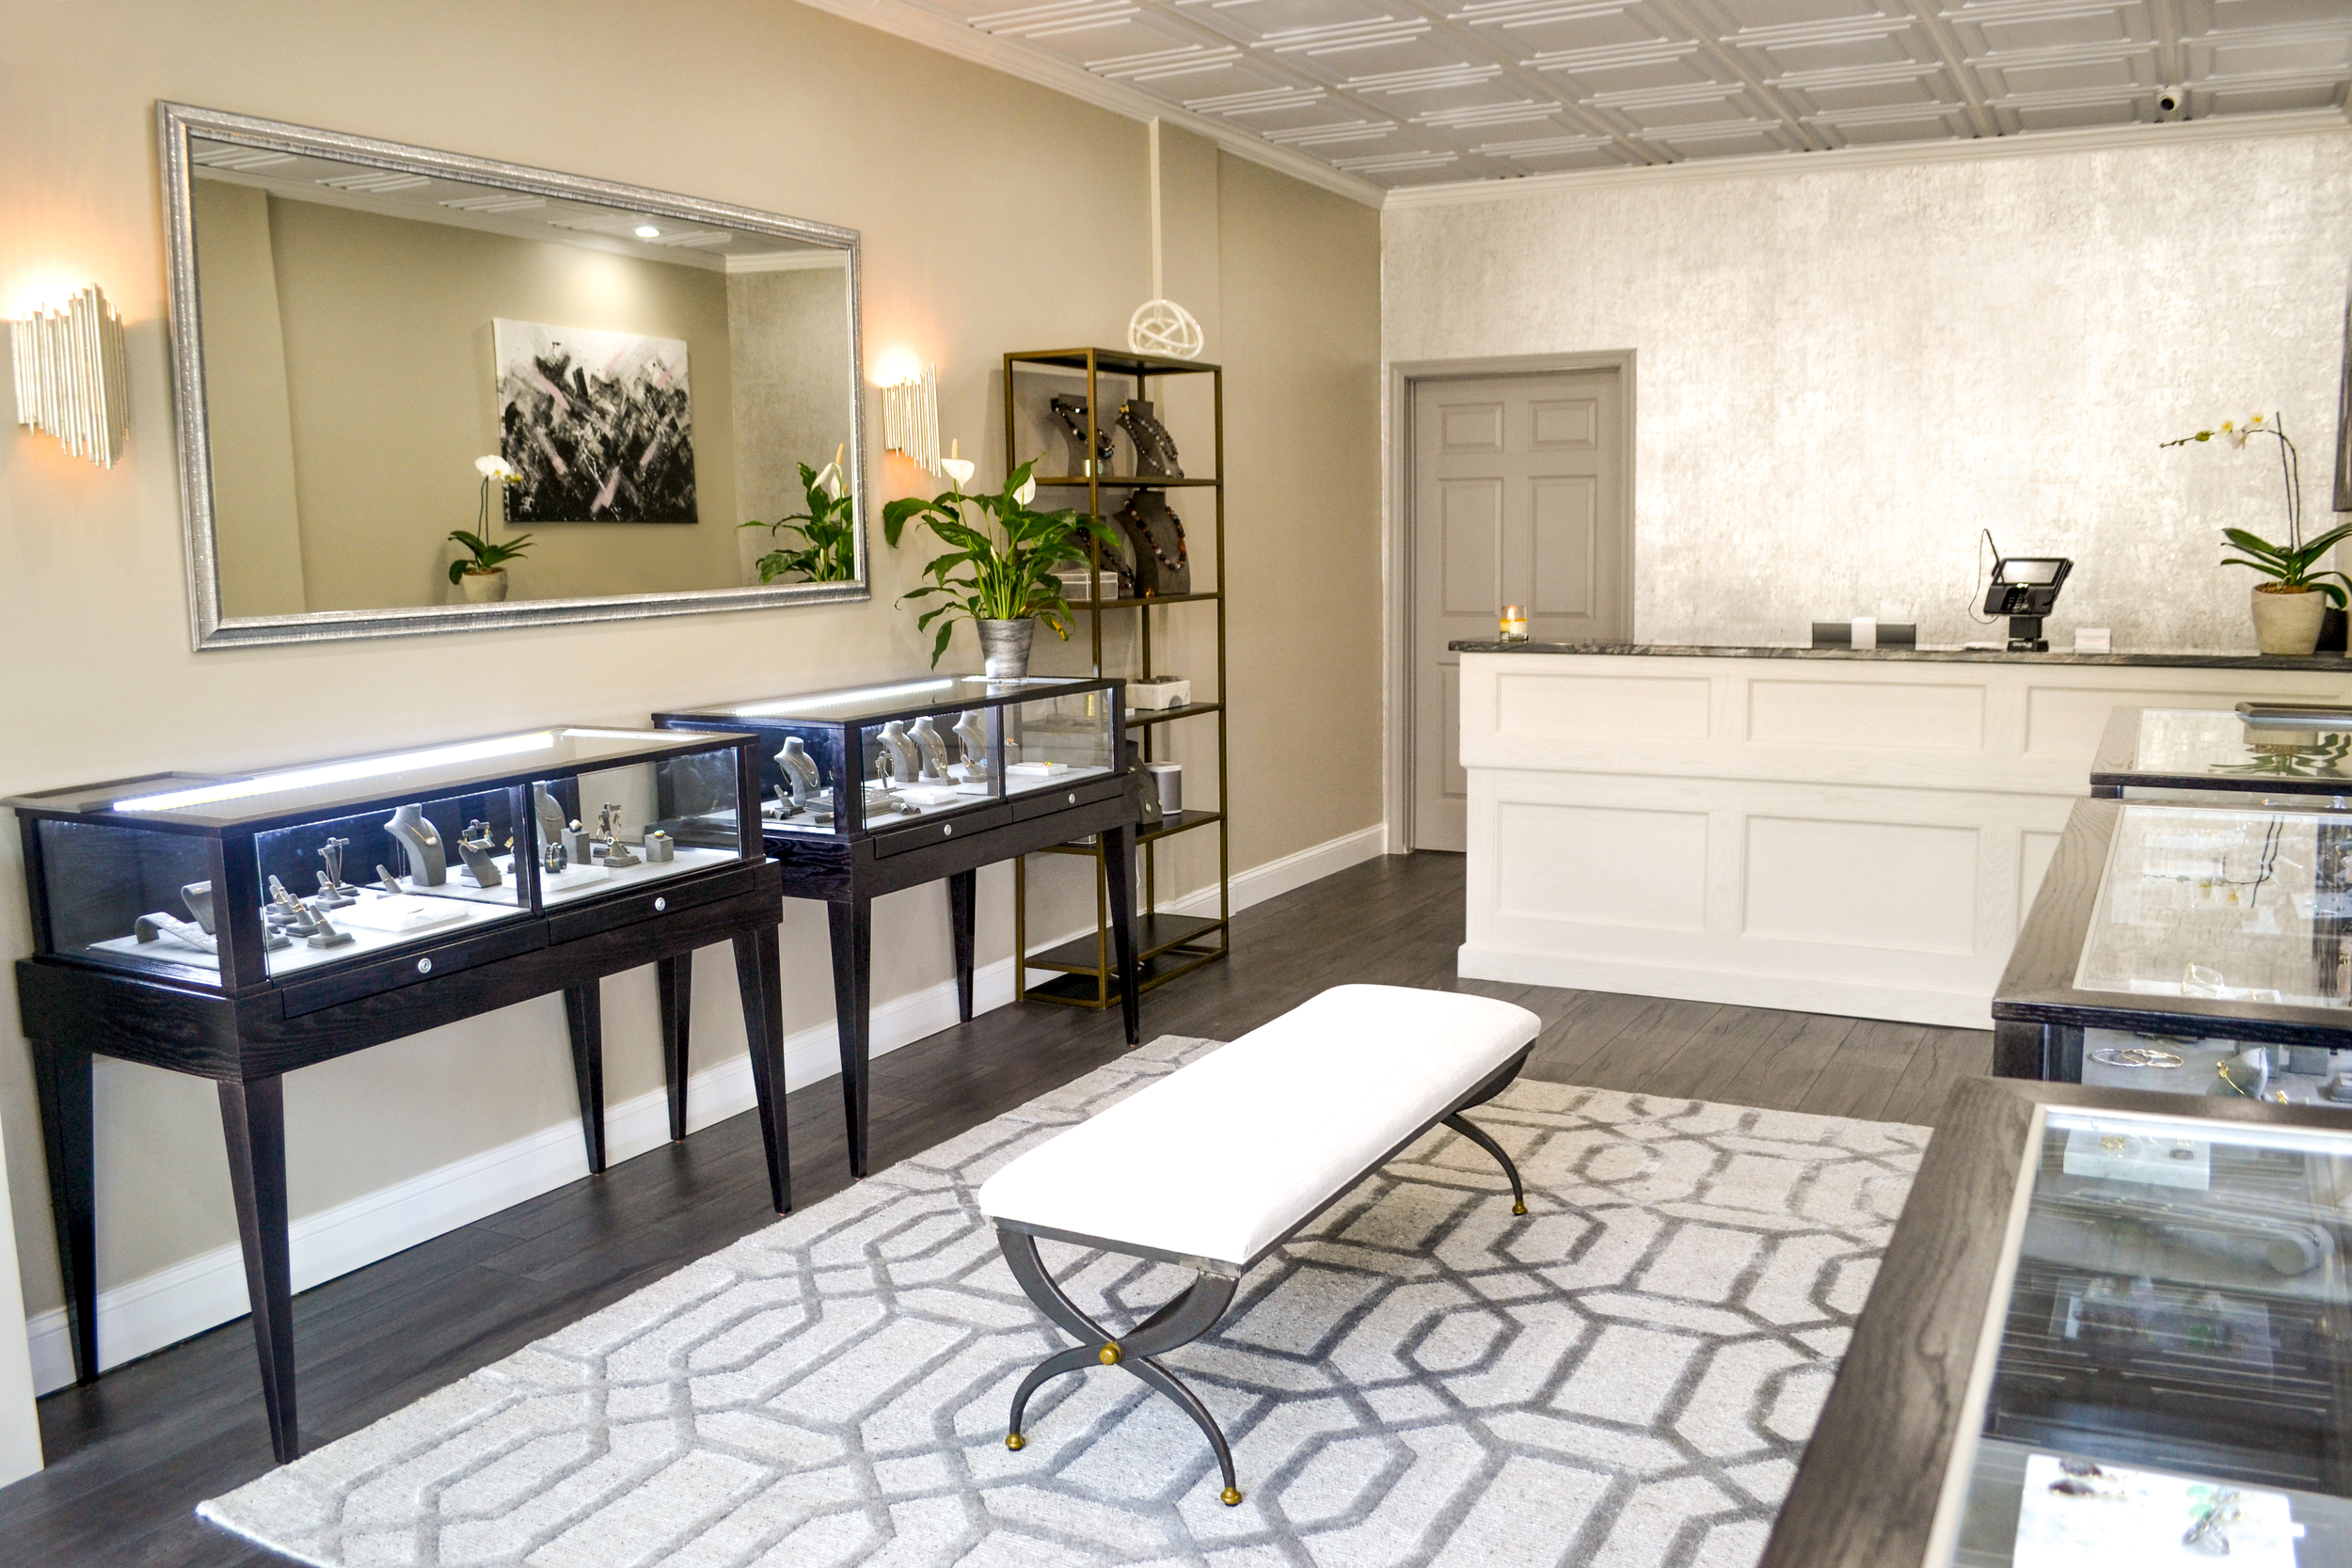 Vincent's Fine Jewelry - We are a full-service store that offers bridal consultations, custom designed pieces, and expert repairs. We look forward to working with you!Vincents Fine Jewelry227 Fifth Avenue, Pelham, NY 10803(914) 235-5000info@vincents-ny.com